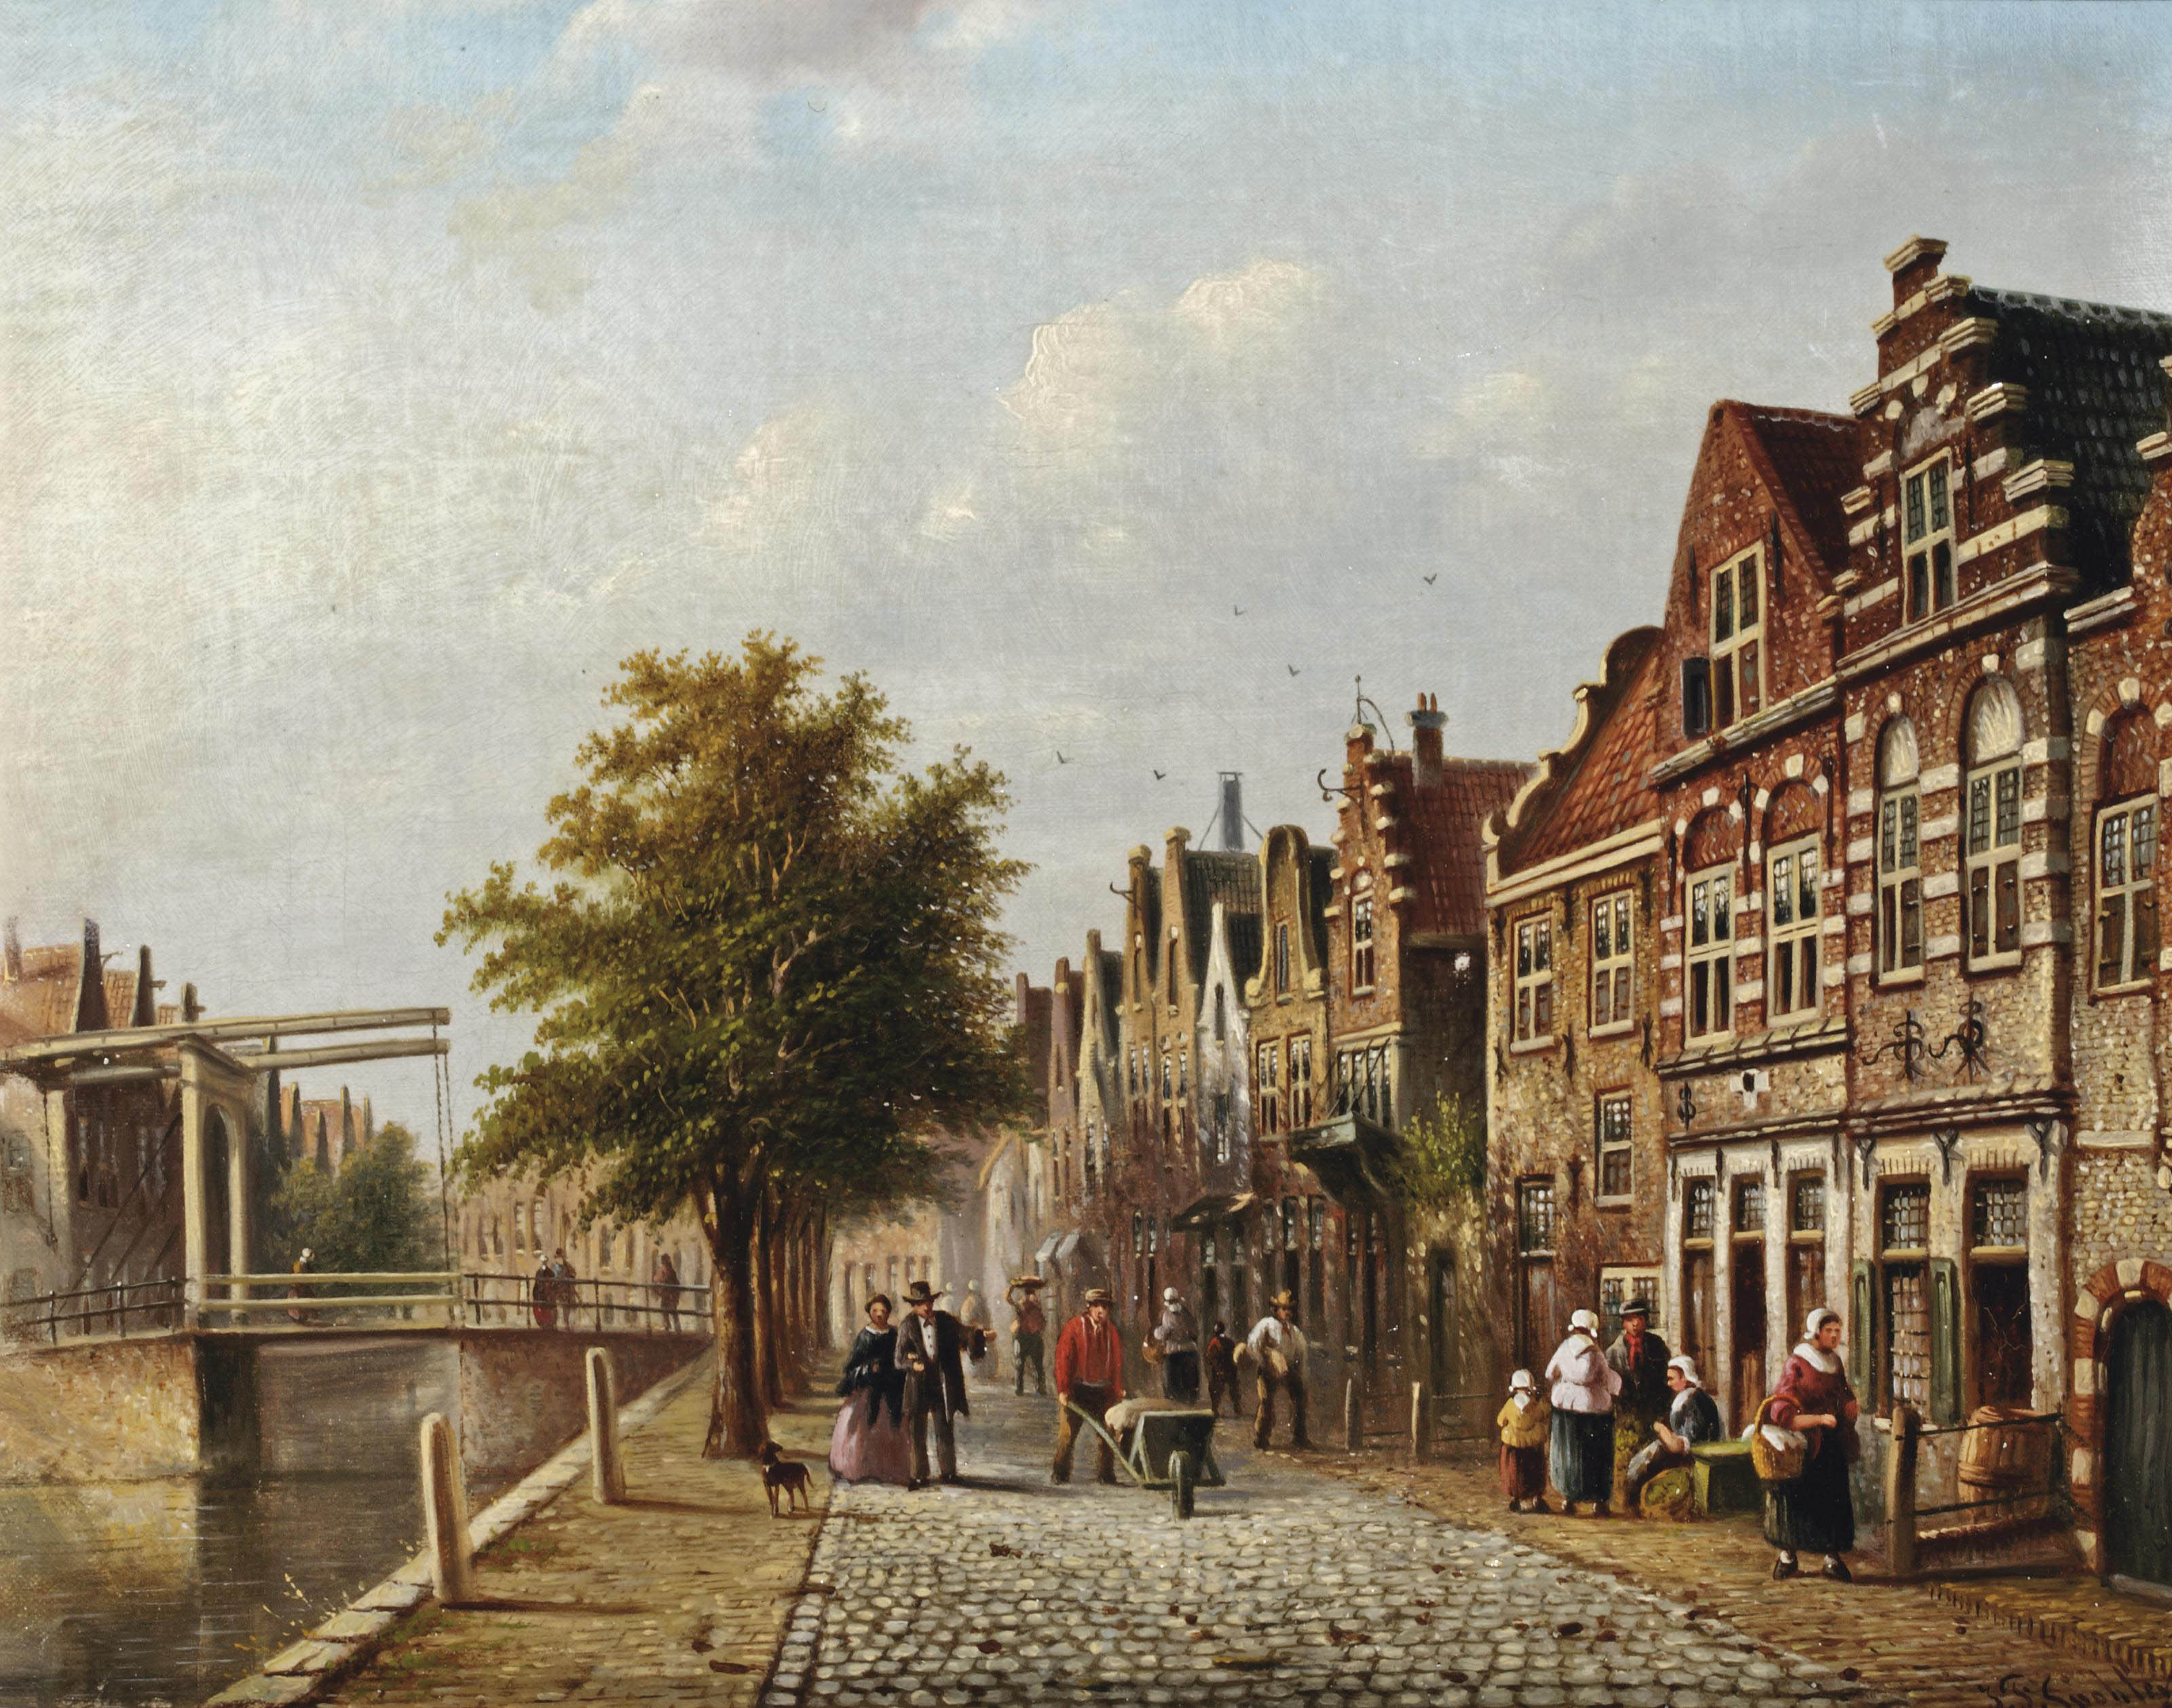 A view of a Dutch town during summer